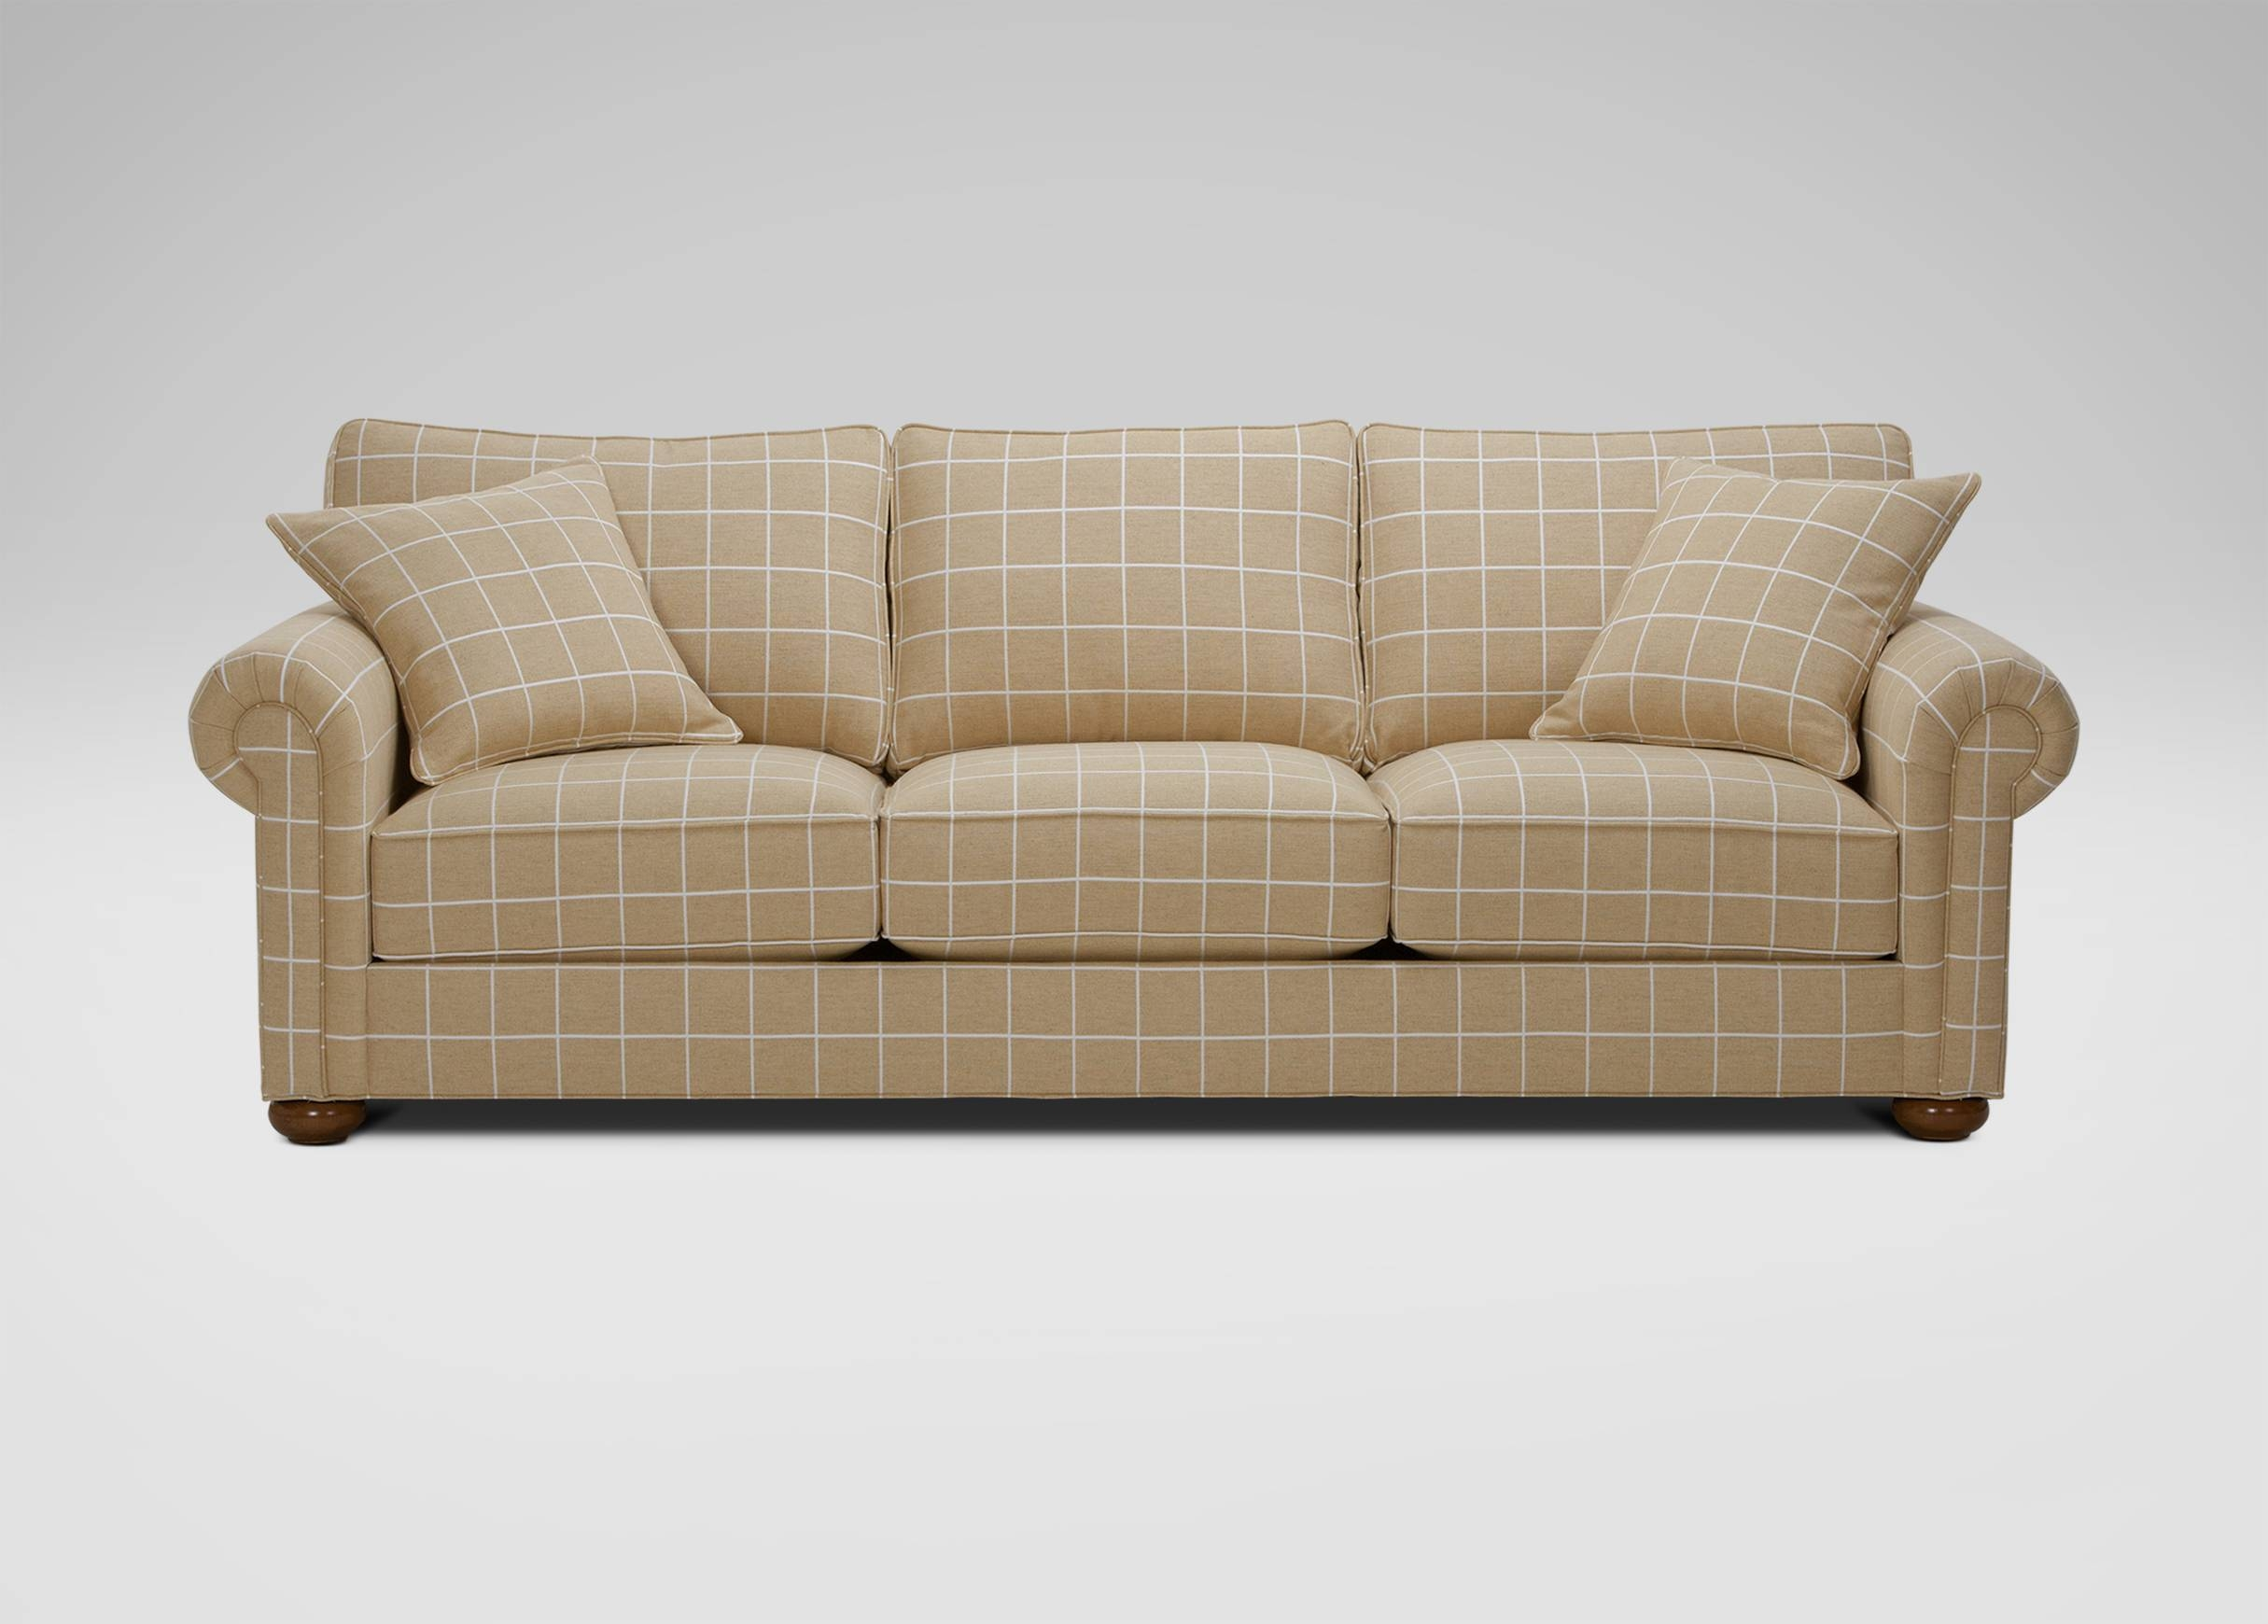 Sofas Center : Awful Ethan Allen Sectional Sofas Photos Ideas Best With Ethan Allen Sectional Sofas (View 10 of 15)